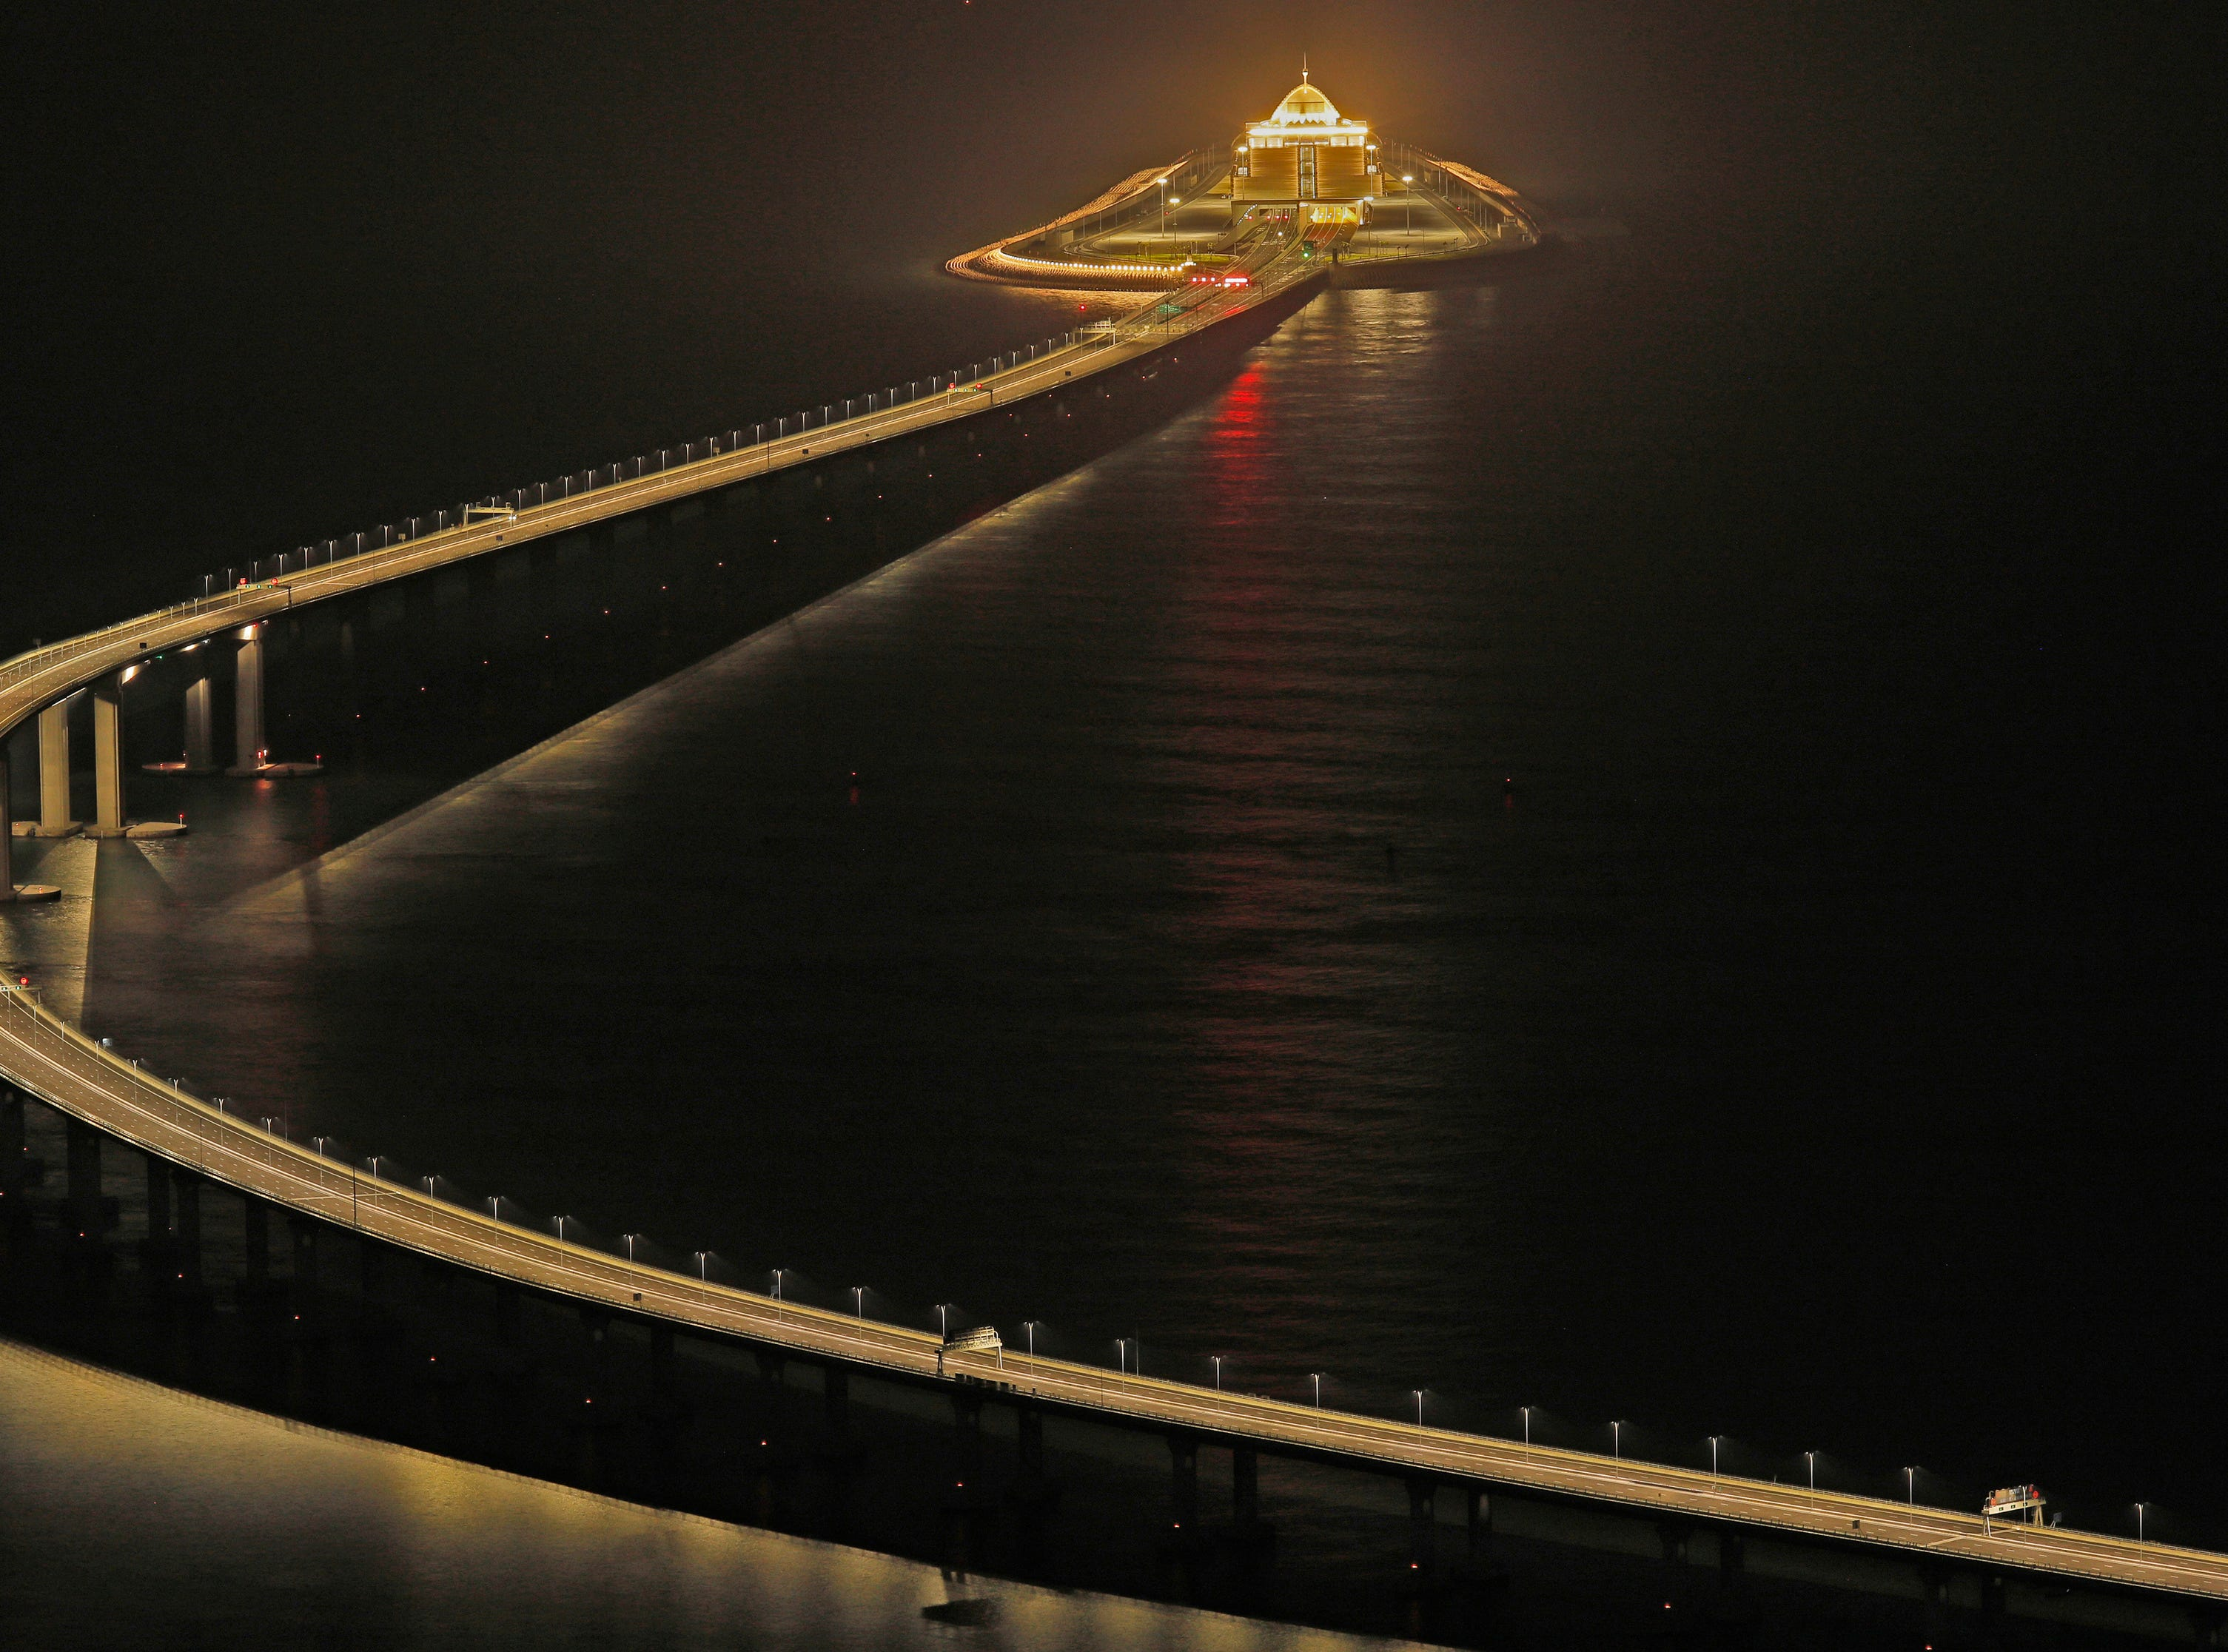 The Hong Kong-Zhuhai-Macau Bridge is lit up in Hong Kong on Oct. 21, 2018. The bridge is the world's longest cross-sea project at 34 miles long and officially opened on Oct. 23.